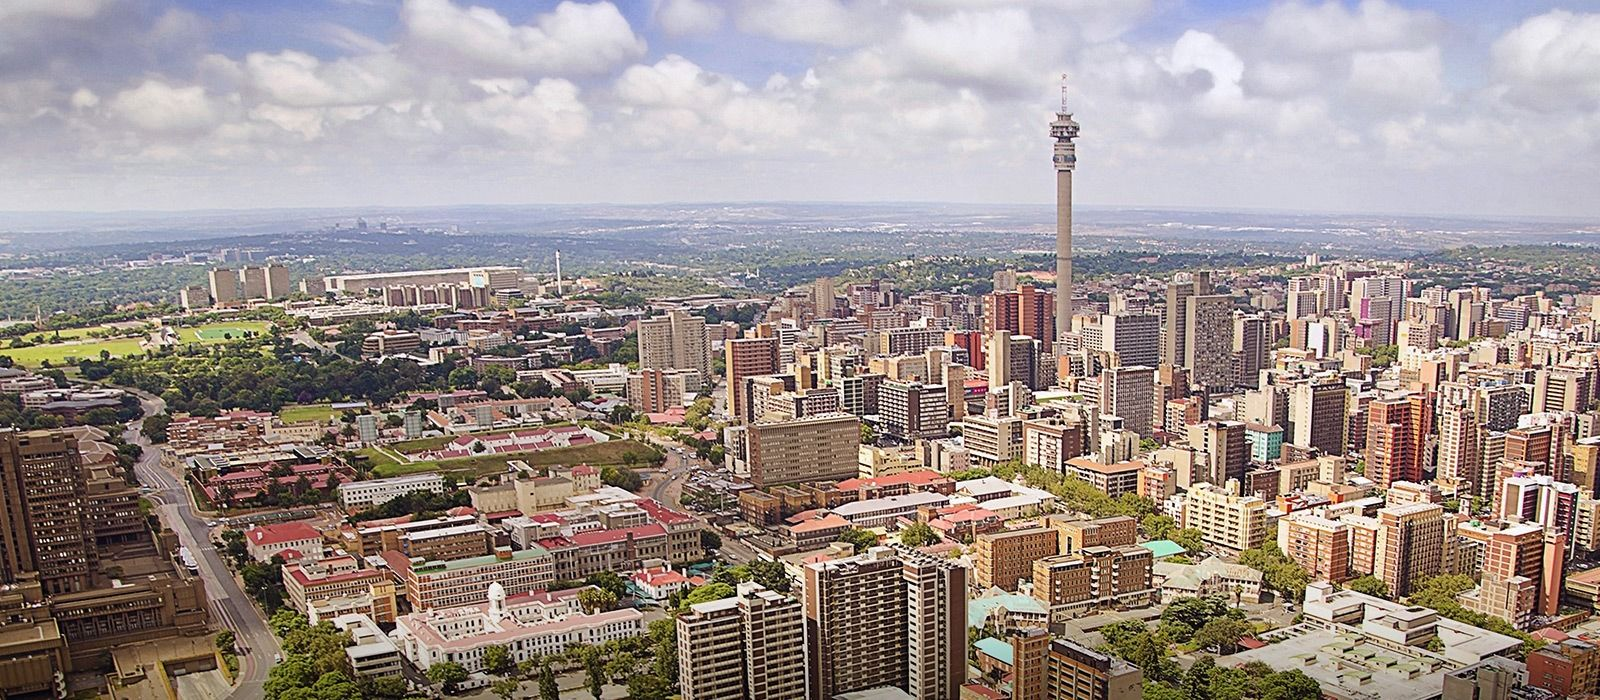 Destination Johannesburg South Africa